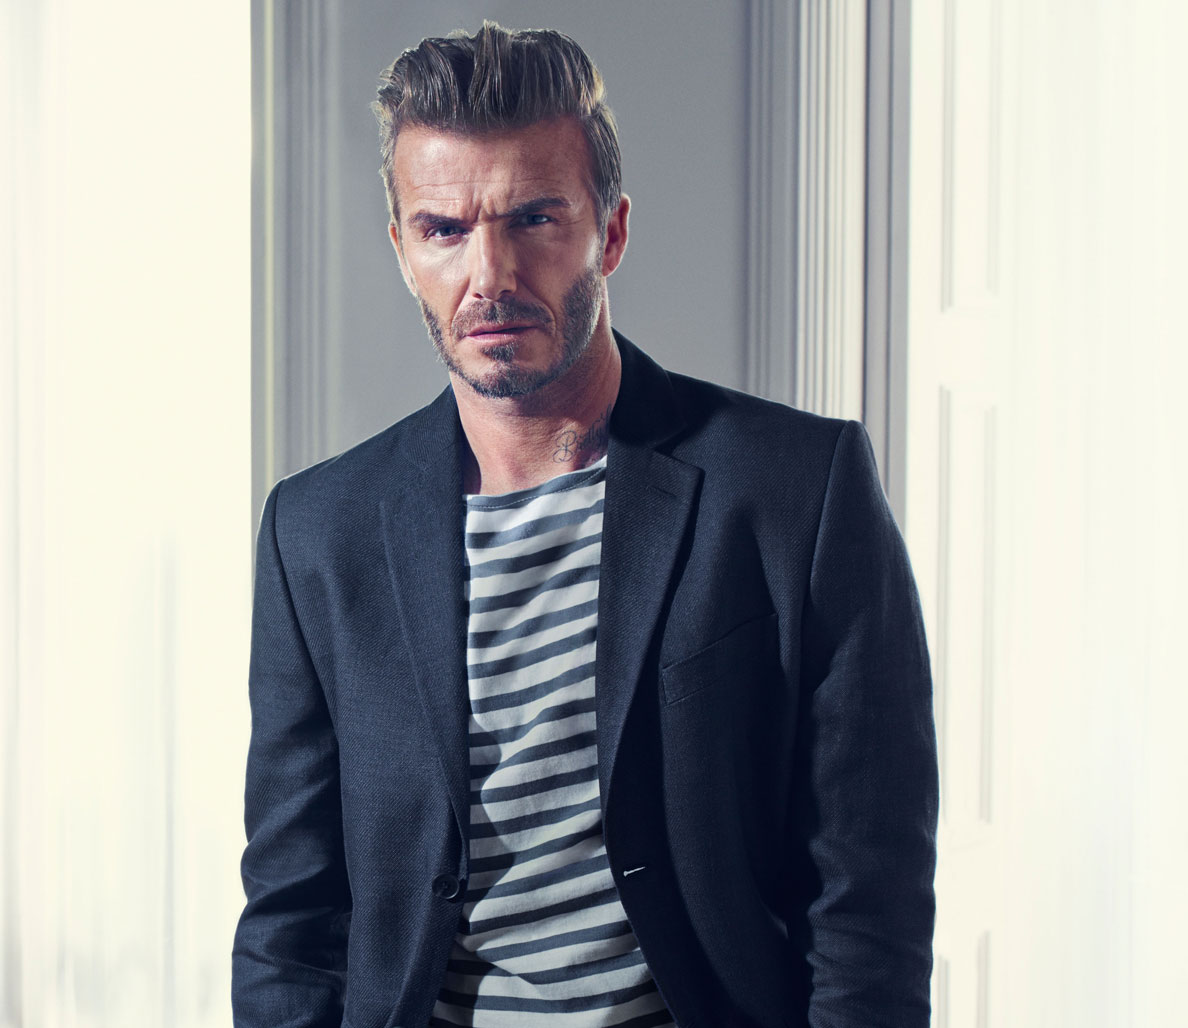 What It Takes To Pull Off The David Beckham Hairstyle